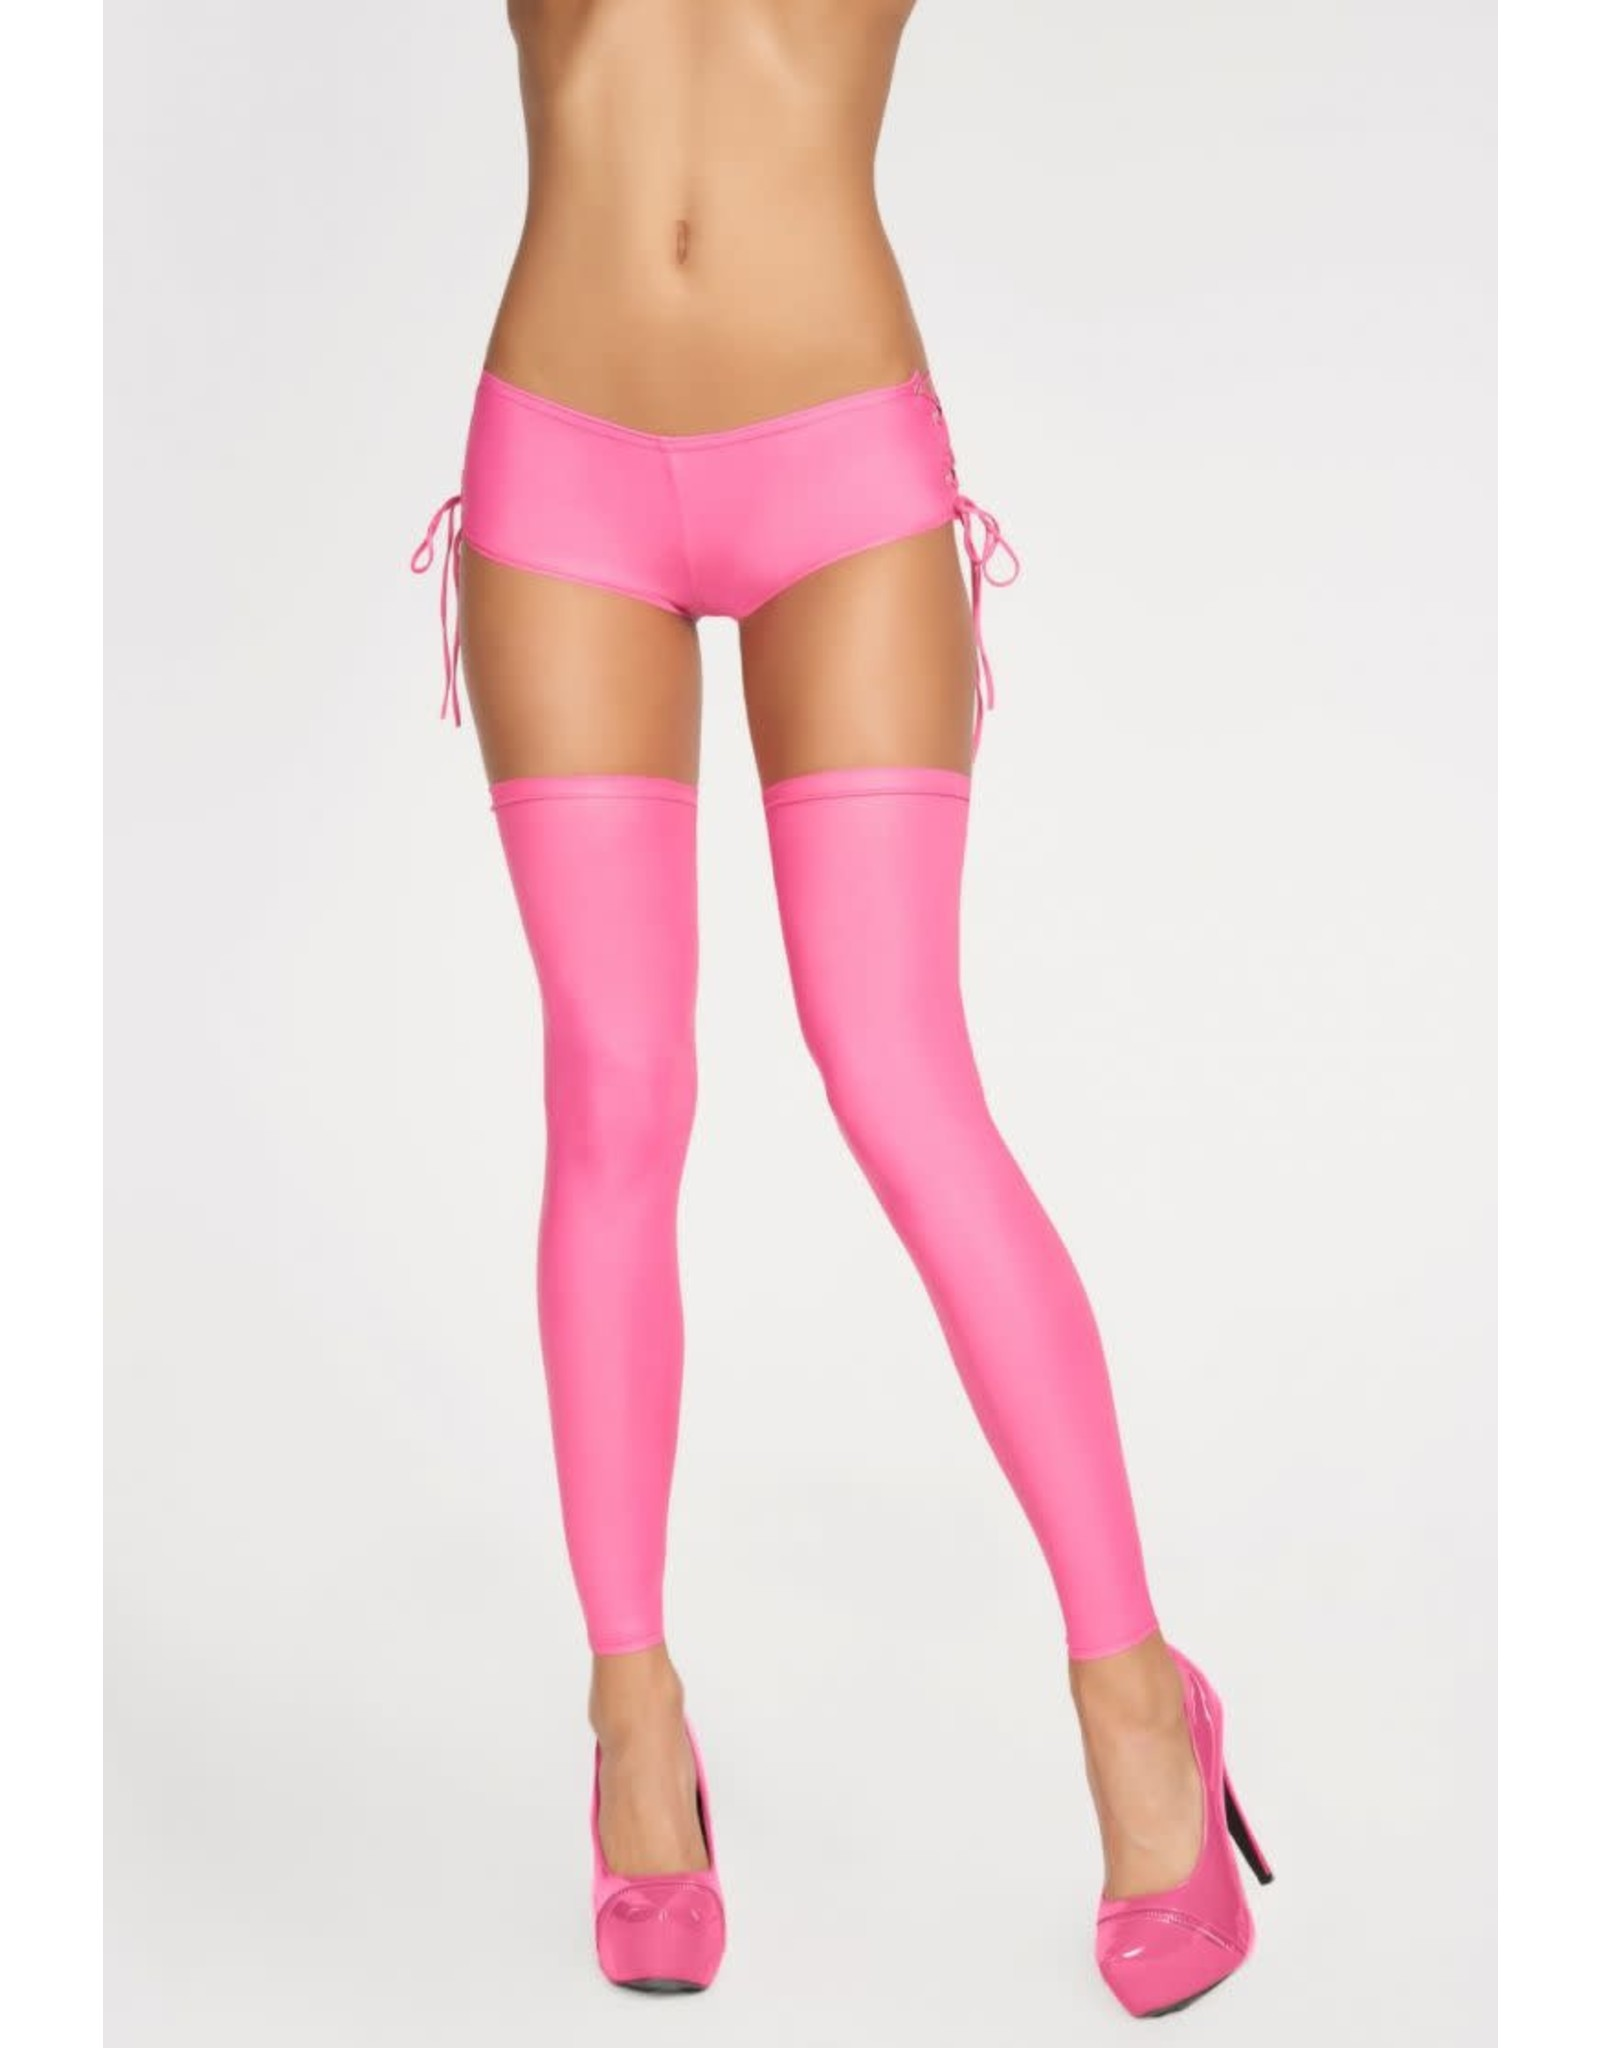 7 HEAVEN 7 HEAVEN - SEXY STOCKINGS WITH LACING AT THE BACK - PINK -  SMALL/MEDIUM